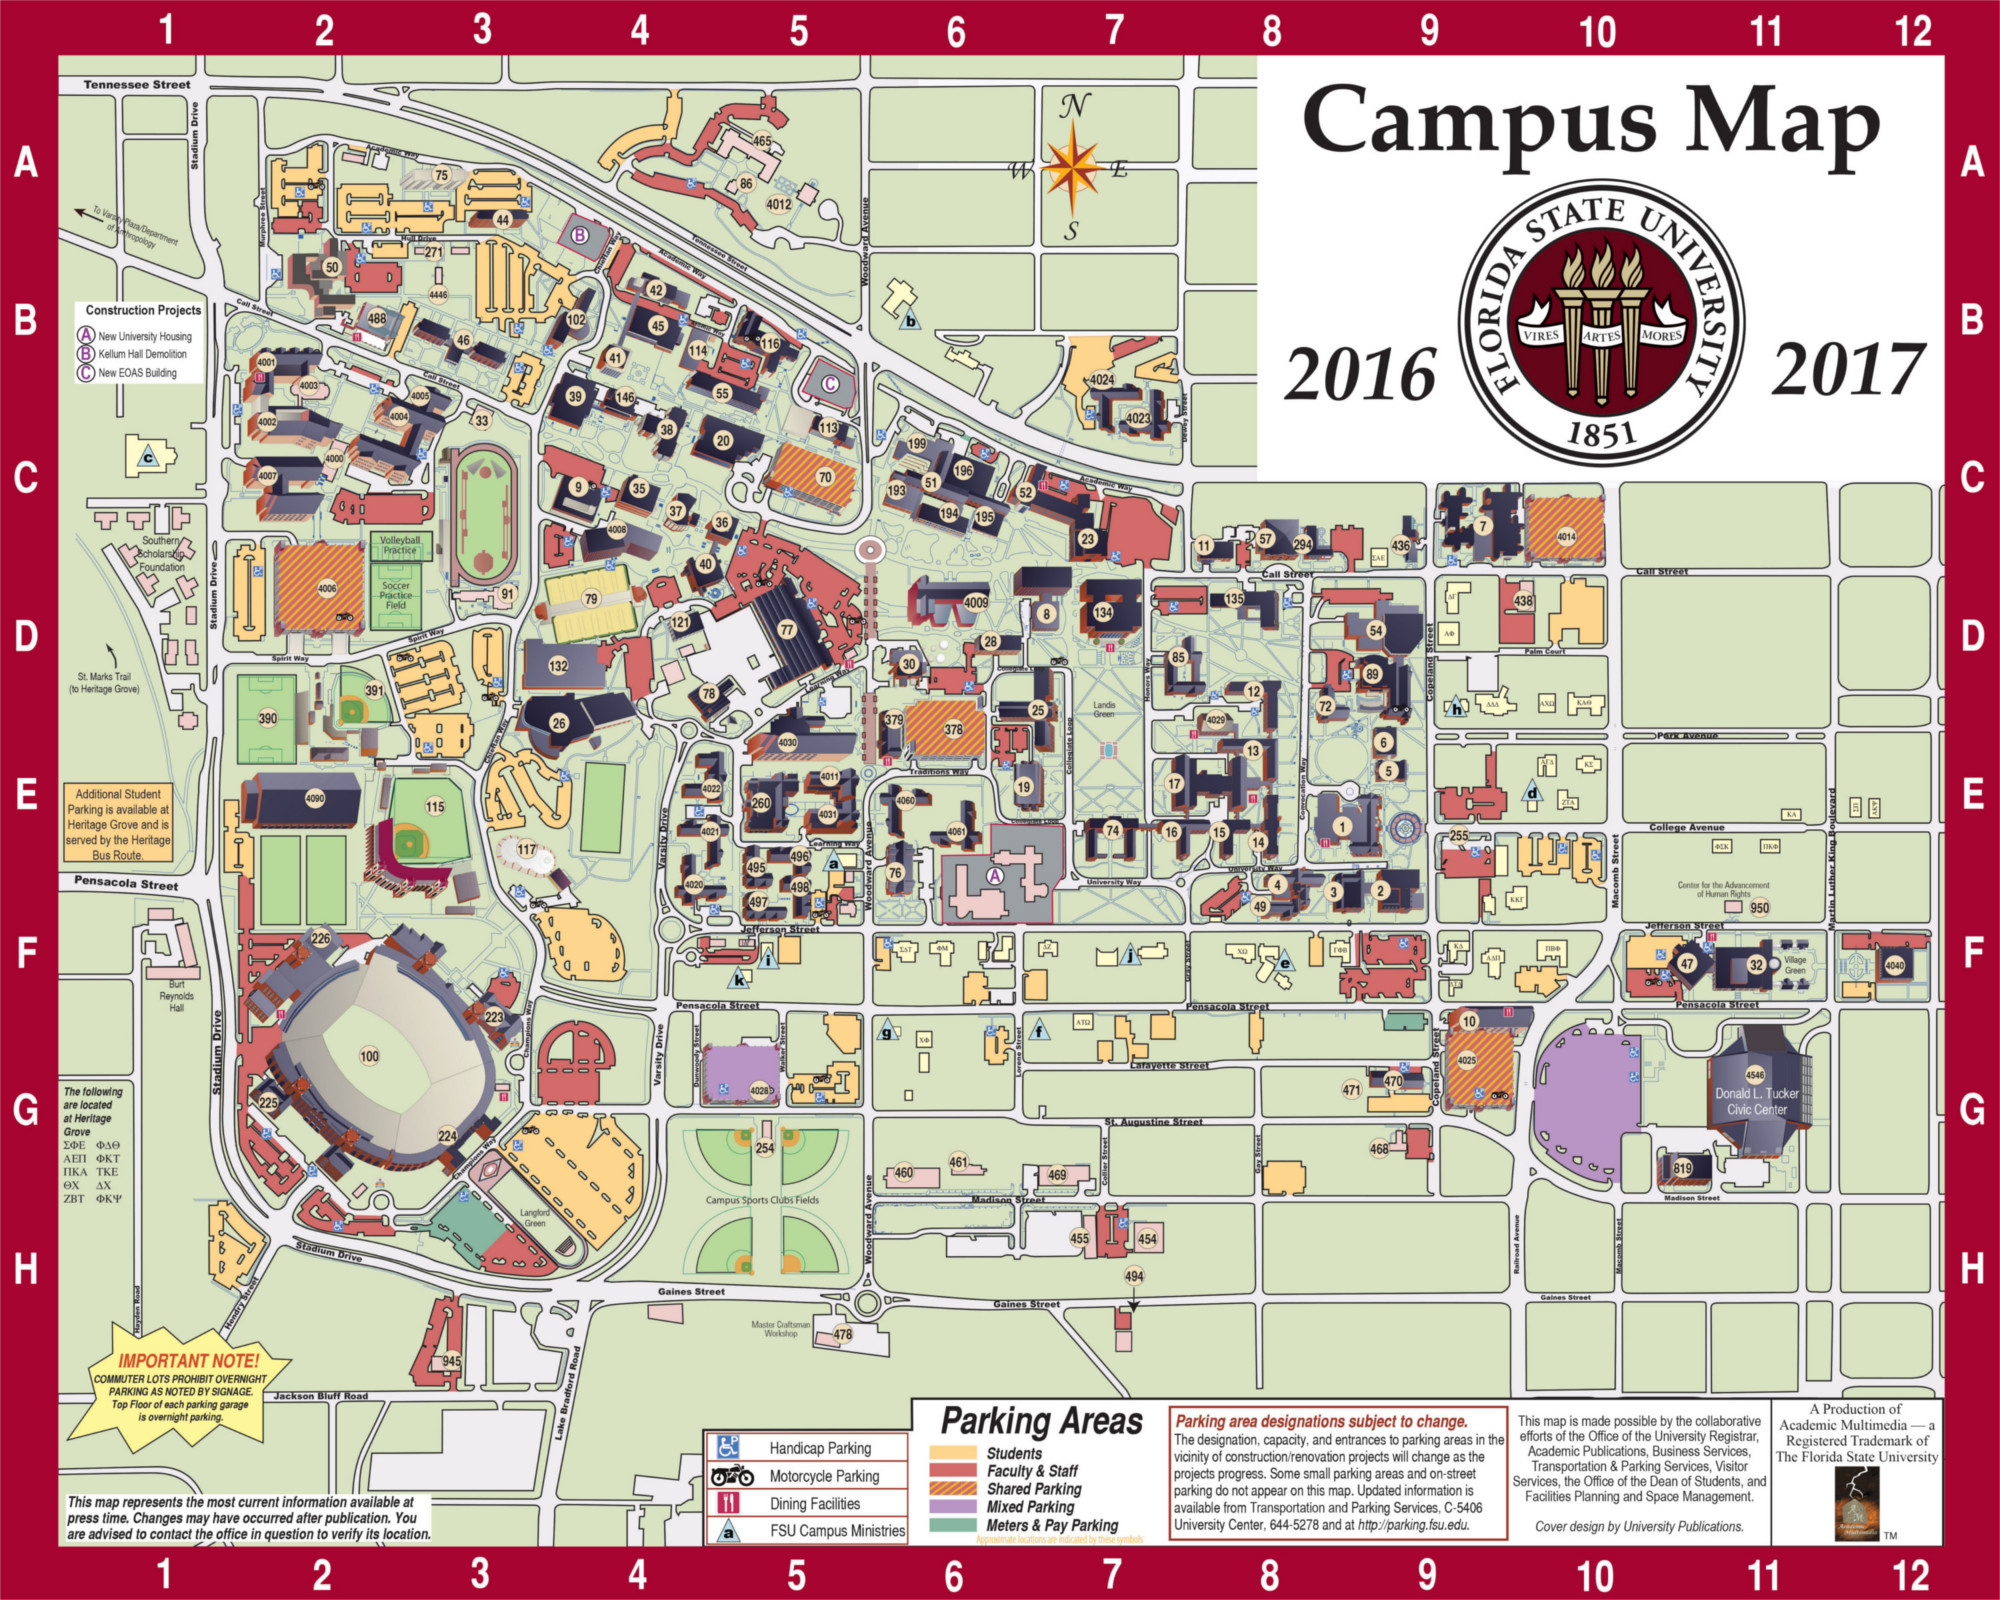 Campus Map | Fsu Online Visitor's Guide - Florida State University Map